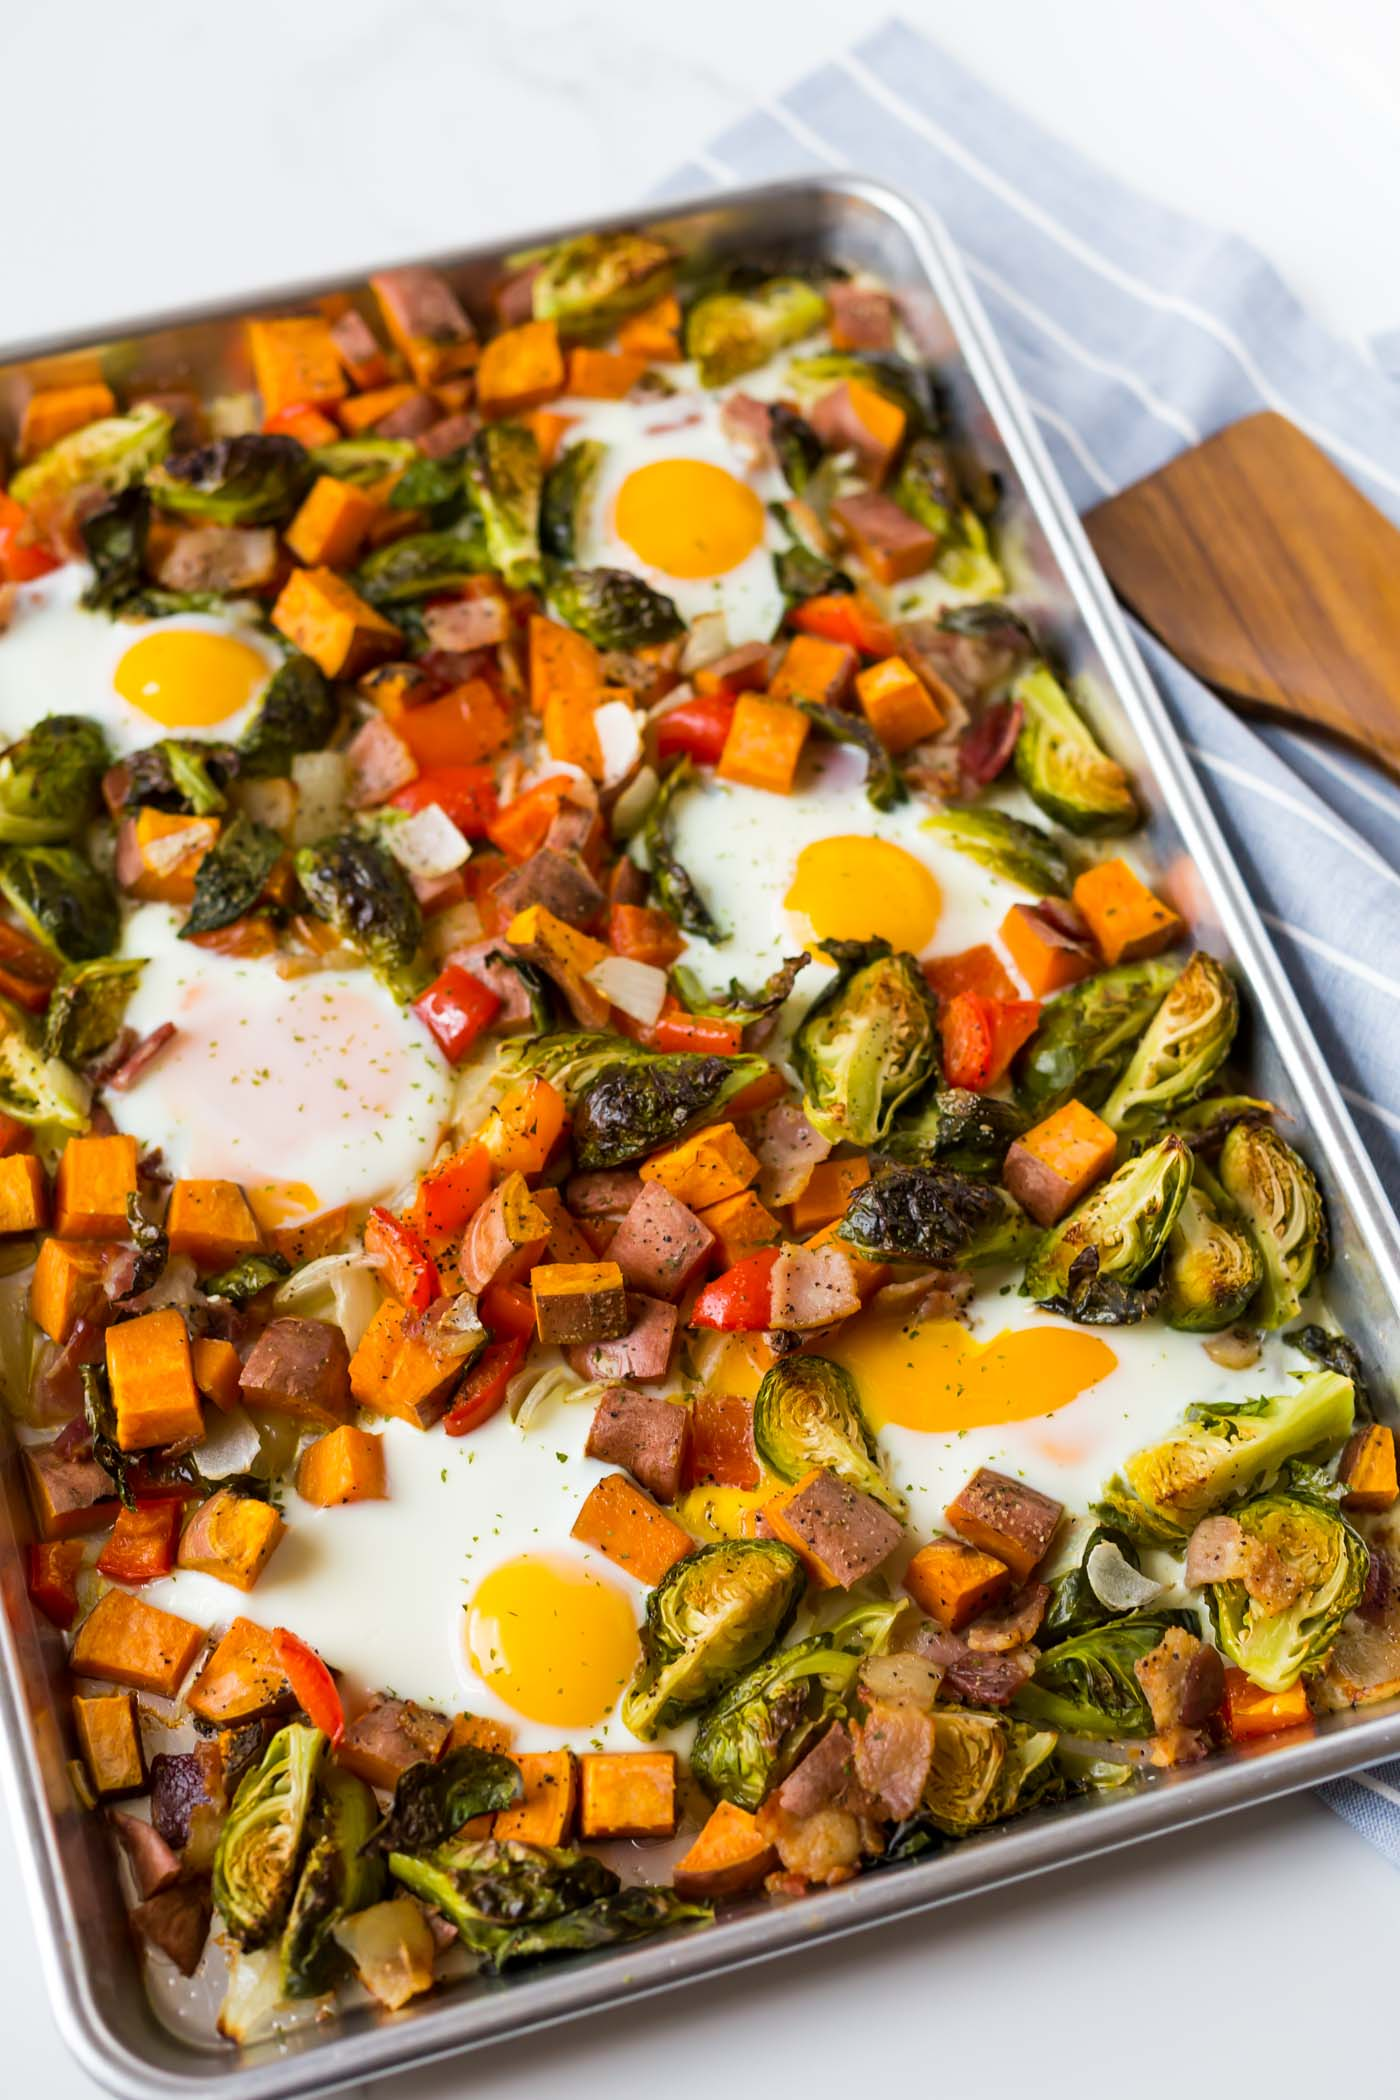 Eggs, bacon, sweet potatoes, brussel sprouts, onion, and red bell pepper on sheet pan with wooden spatula and blue towel with white stripes.